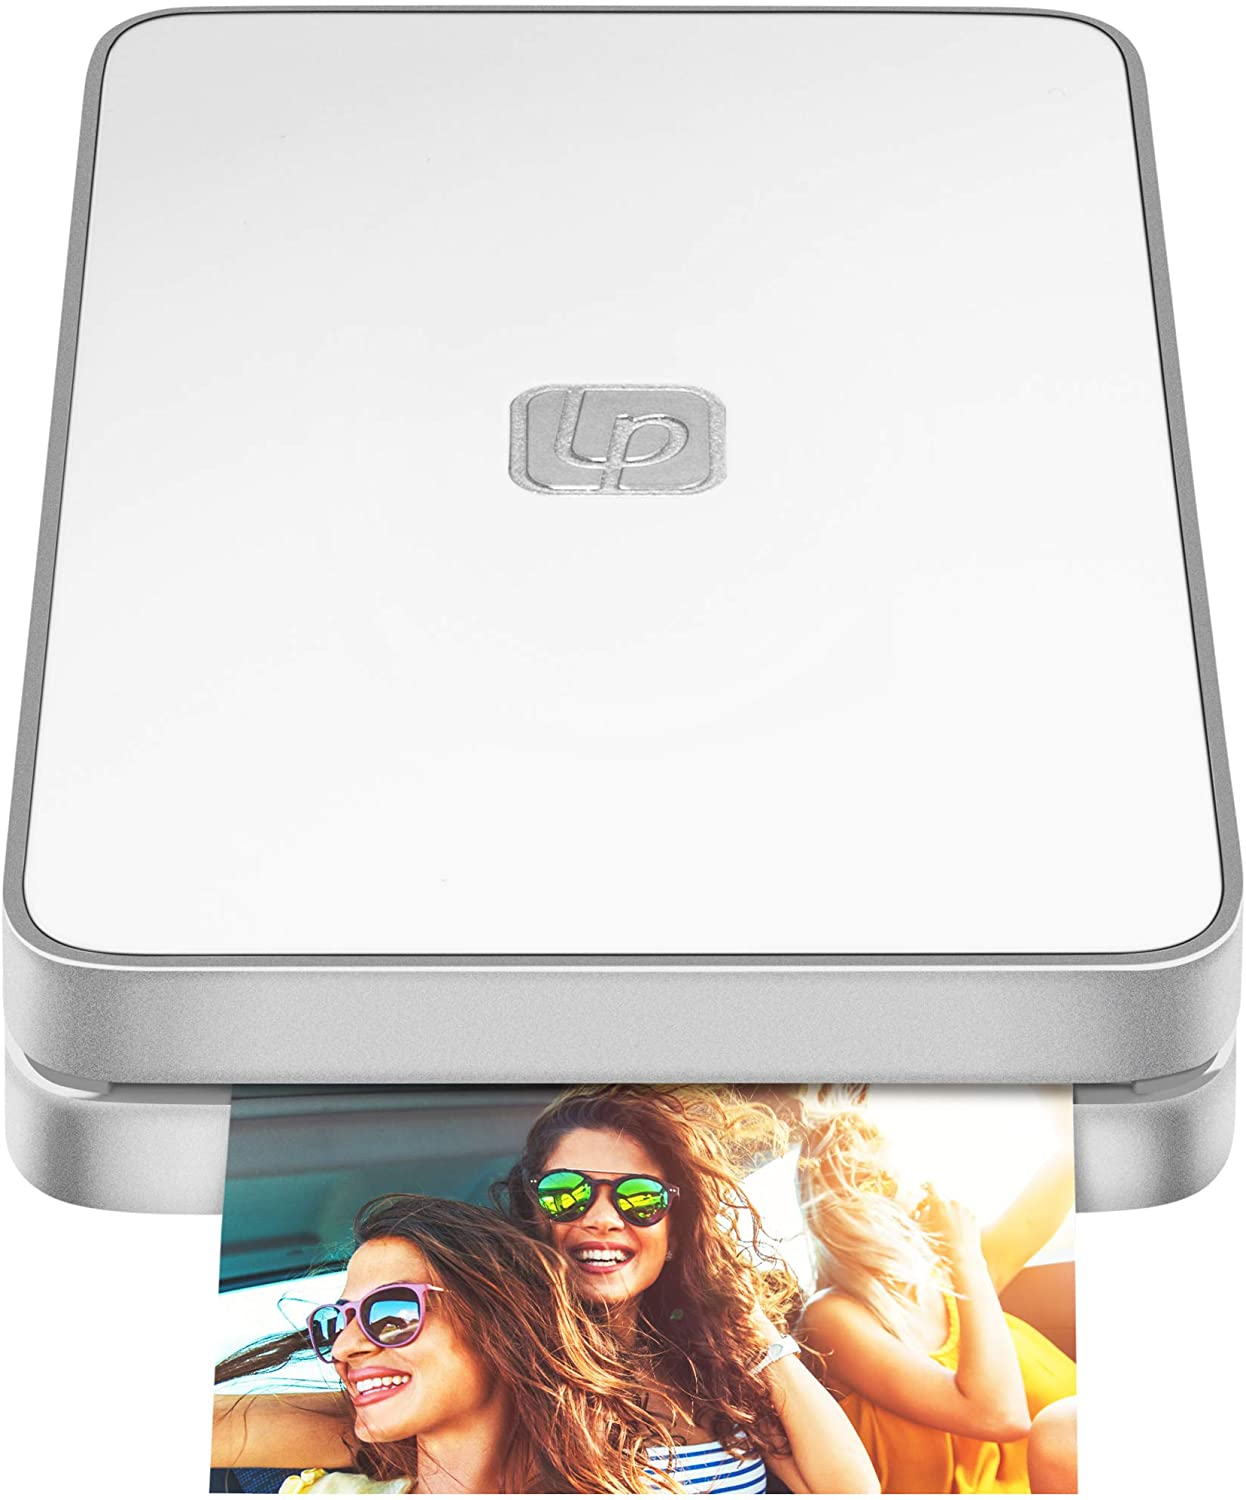 LifePrint Portable Printer image